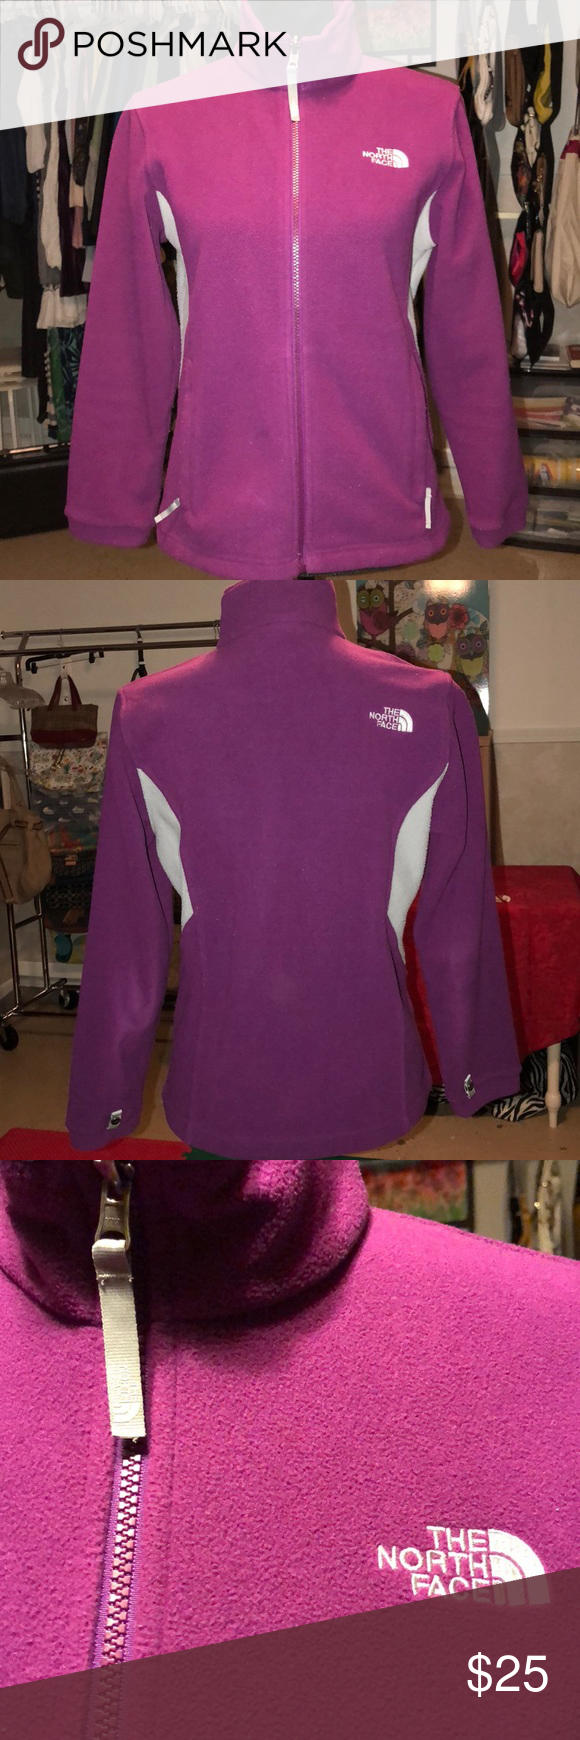 The North Face Fleece Jacket Girls L 14/16 Women S In Good